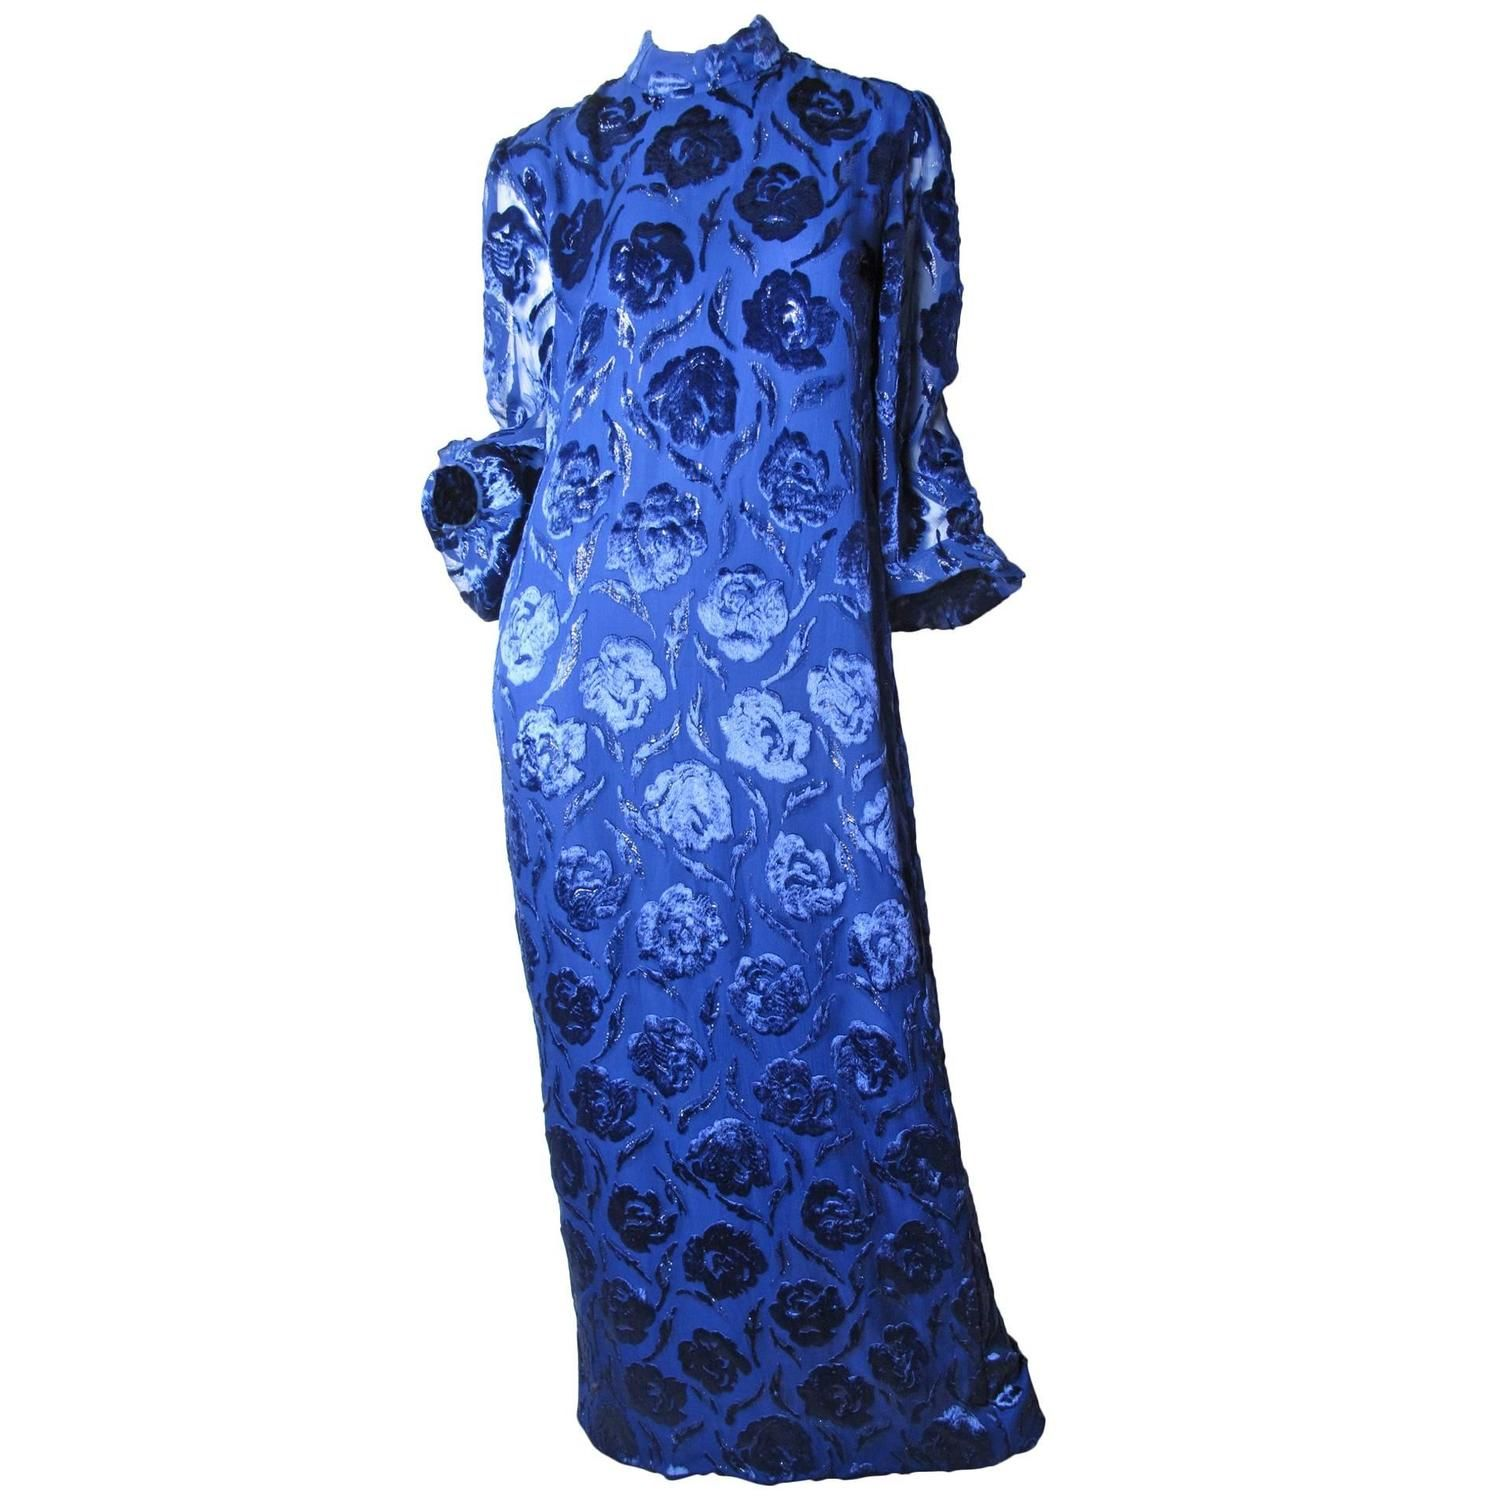 Adele simpson royal blue floral burnt velvet evening gown adele